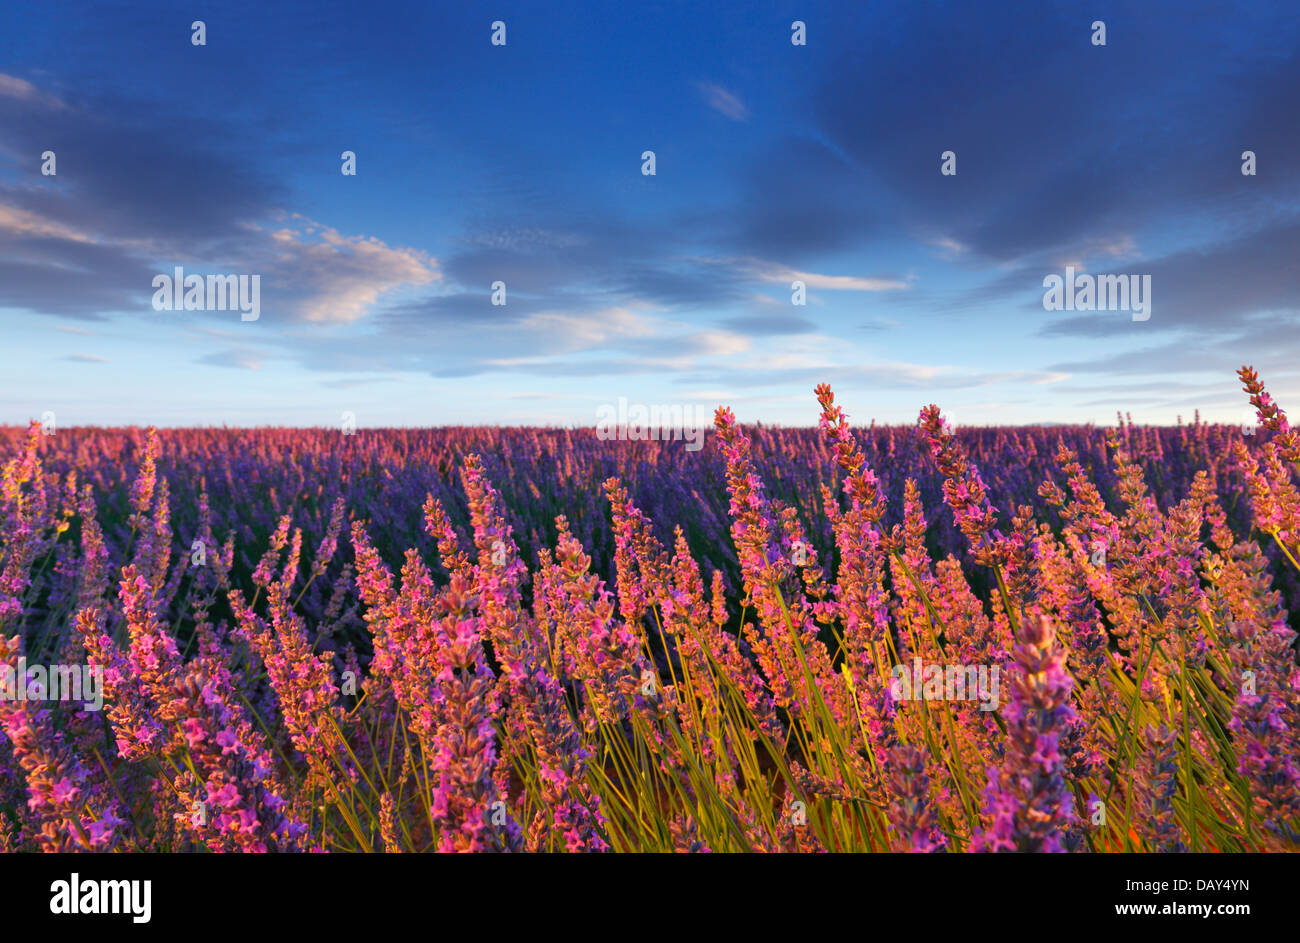 Lavender flower in Provence - Stock Image